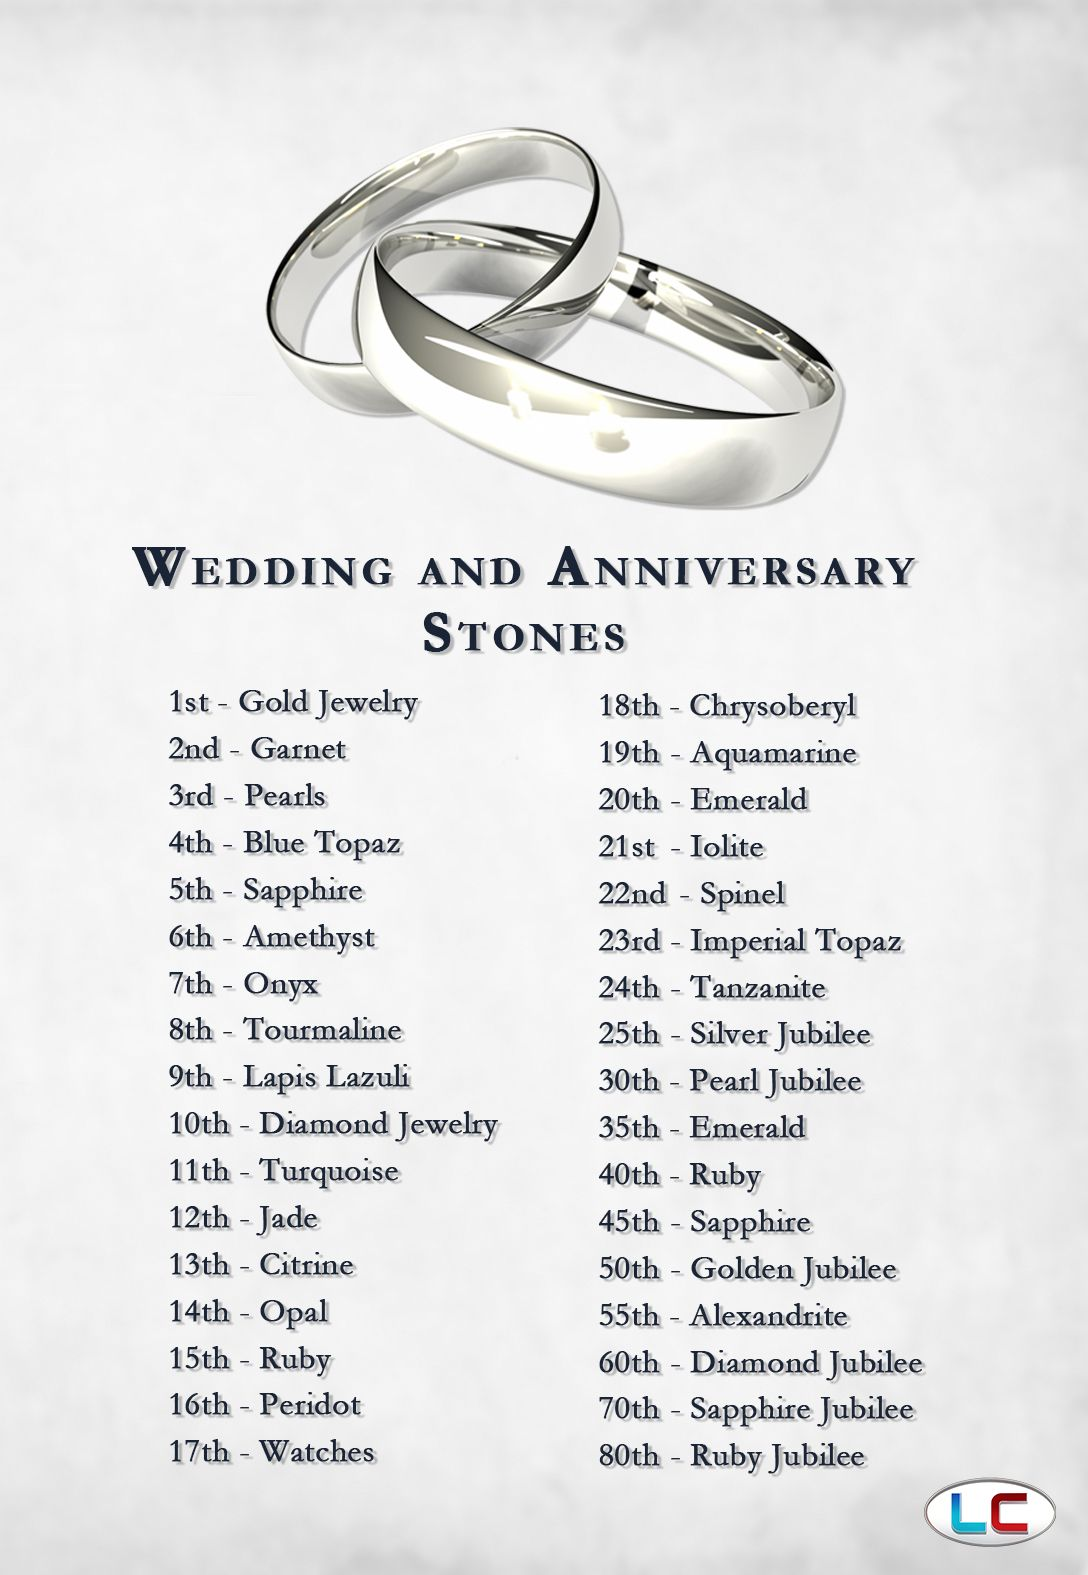 Wedding and Anniversary Gemstones: 10th Anniversary is diamonds ...